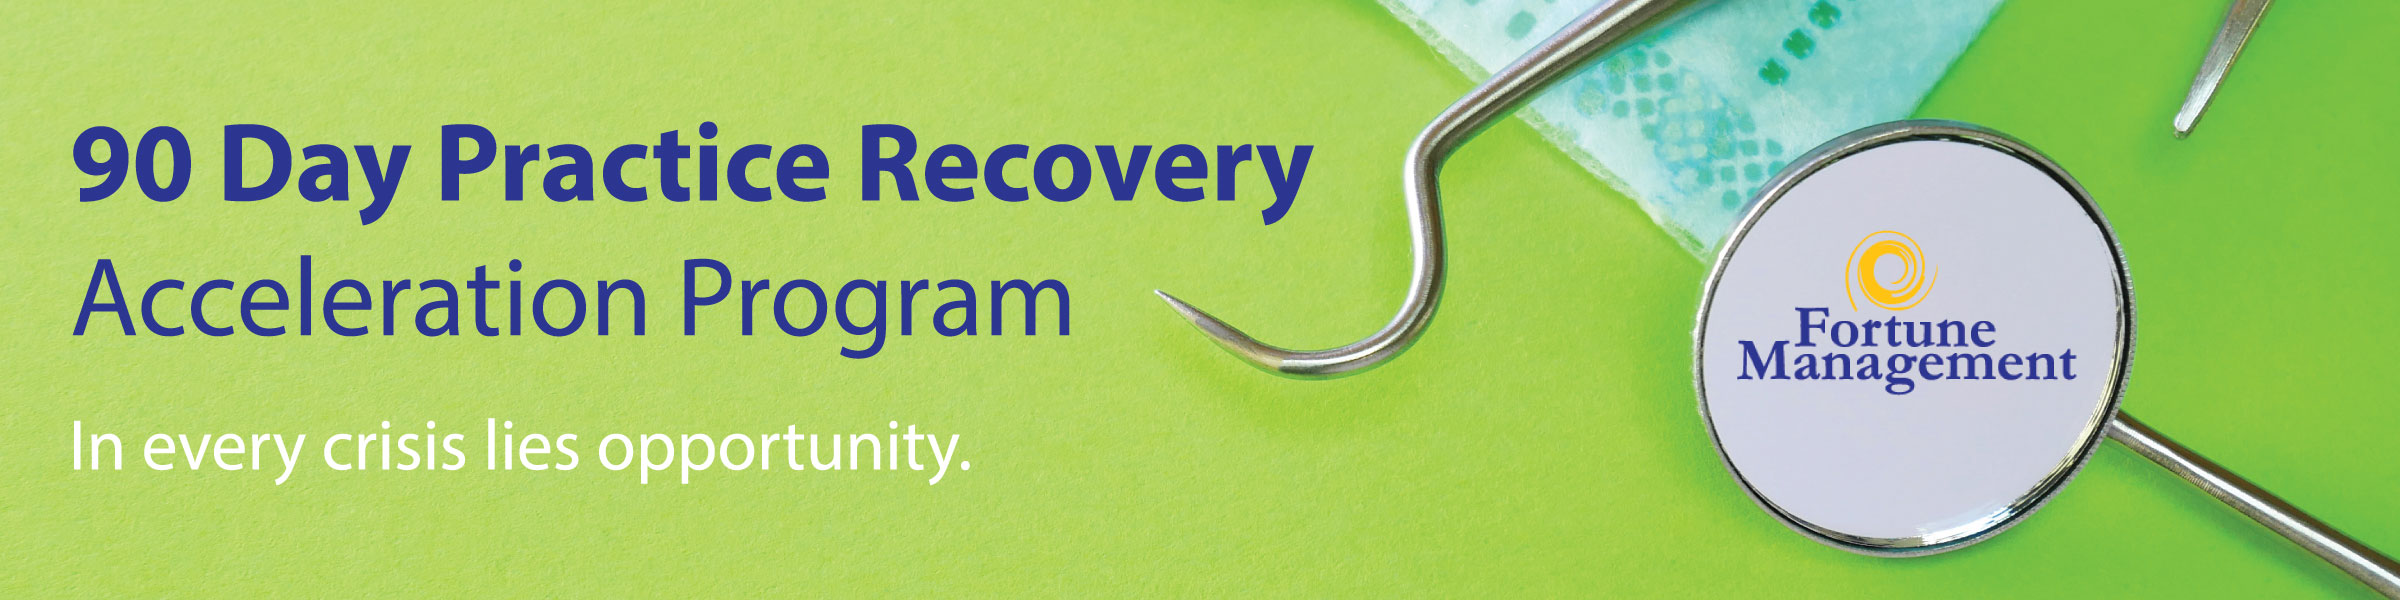 90 day recovery program banner graphic